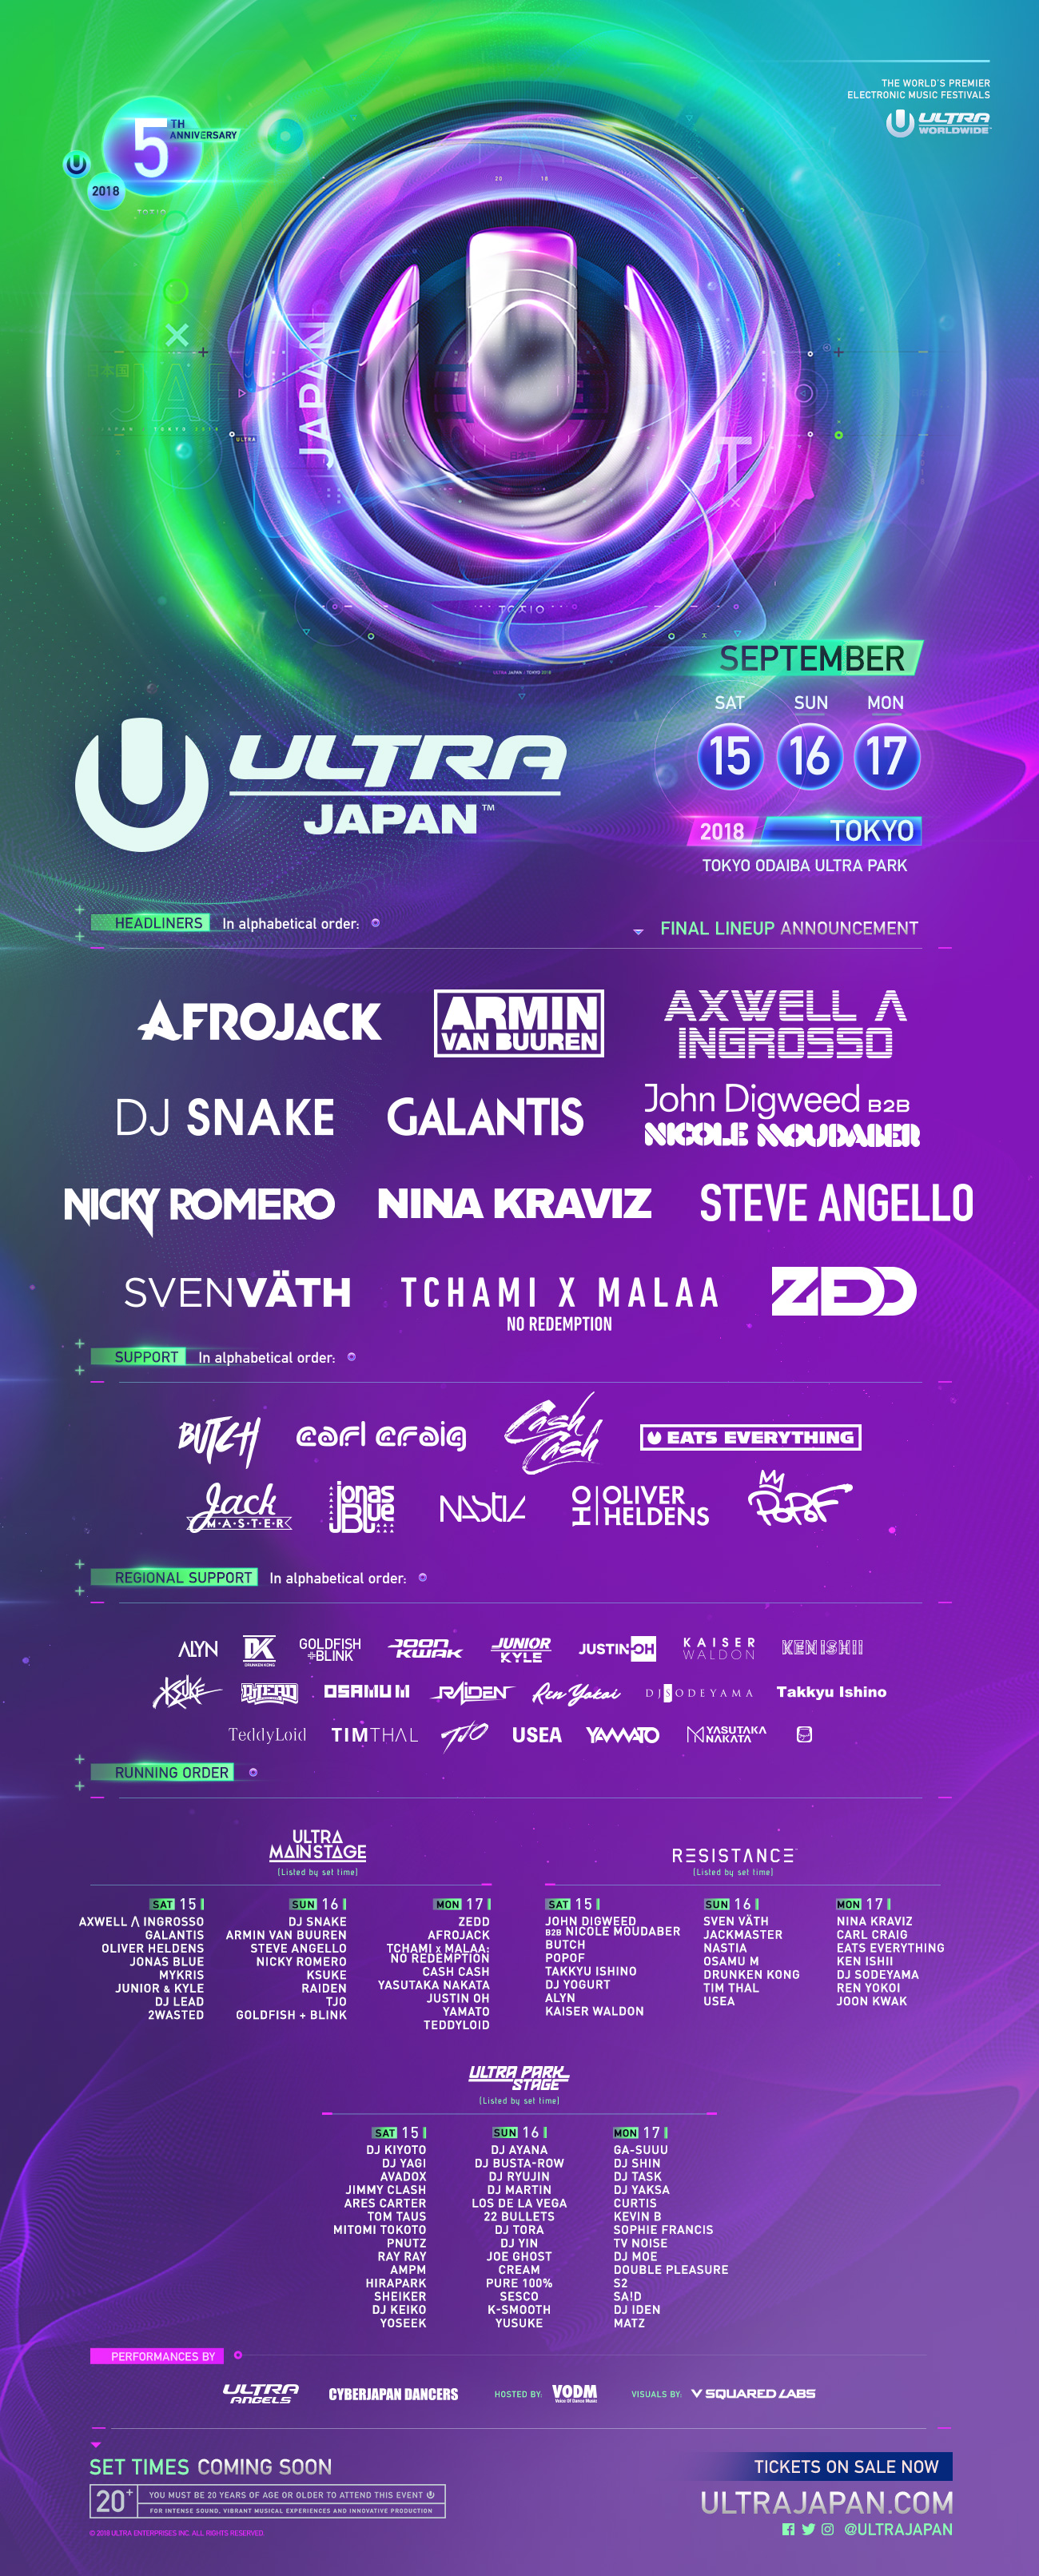 Ultra Japan 2018 Phase 2 with Time